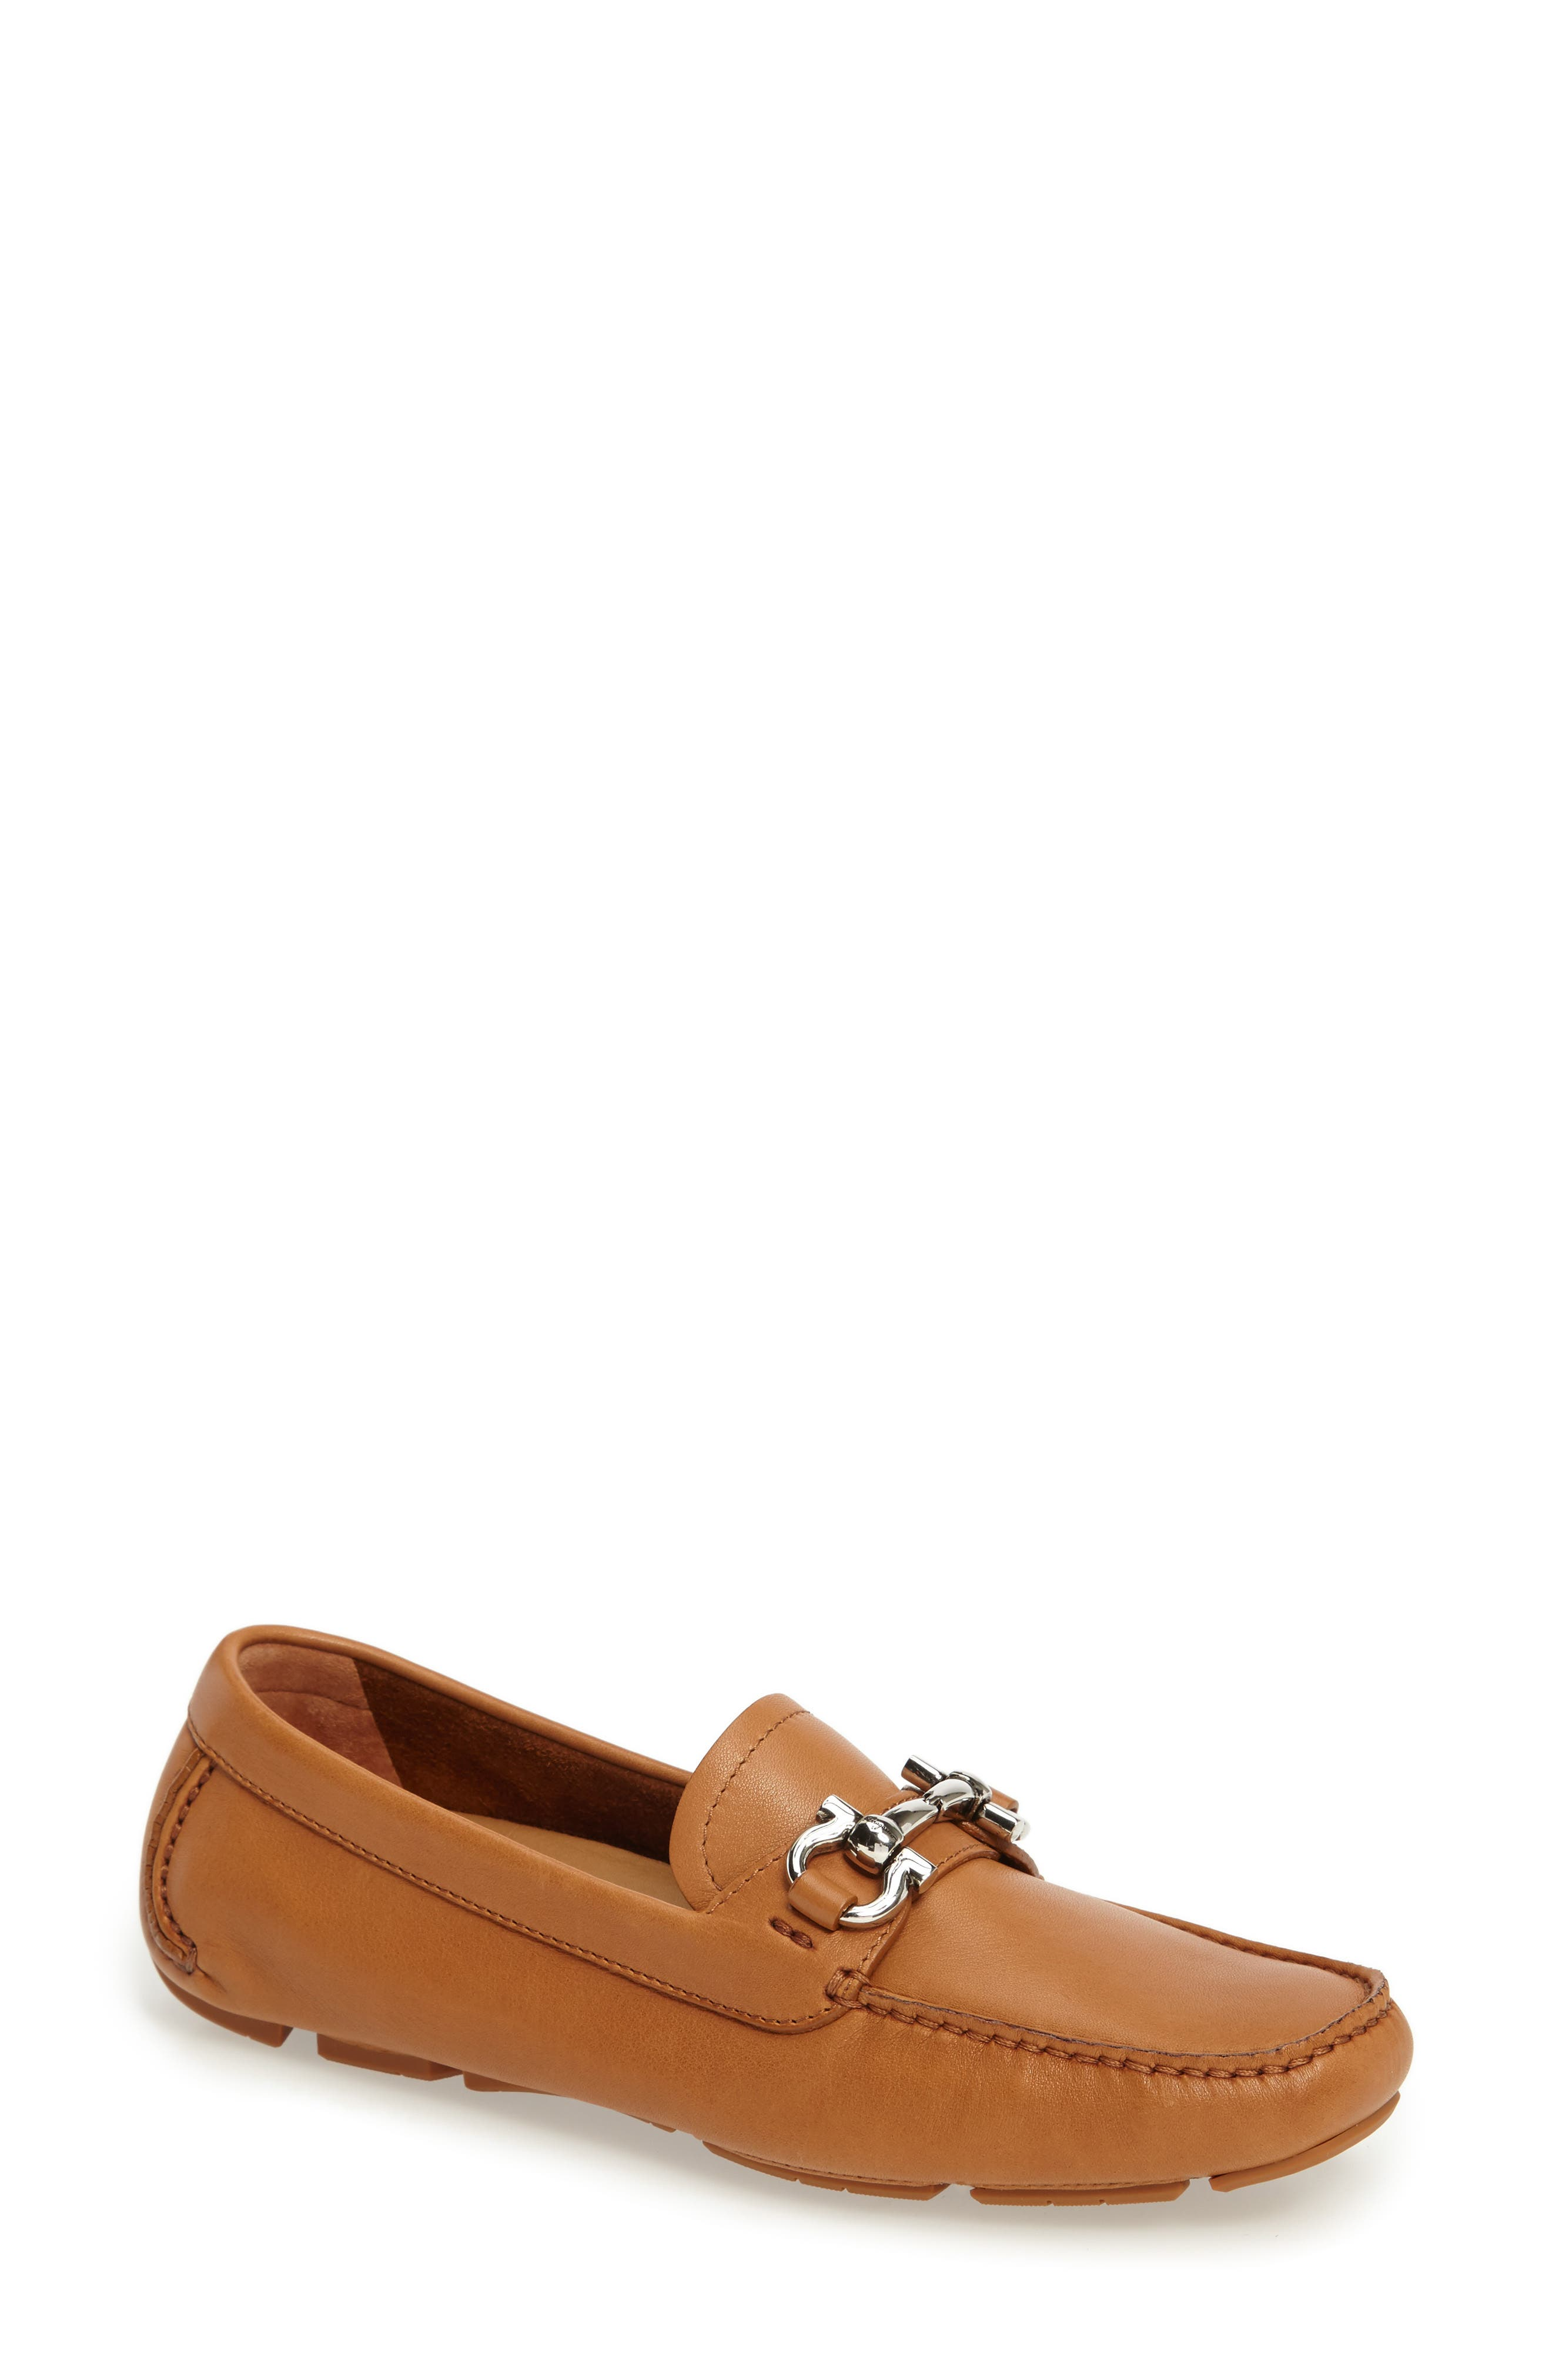 Parigi Loafer,                             Main thumbnail 3, color,